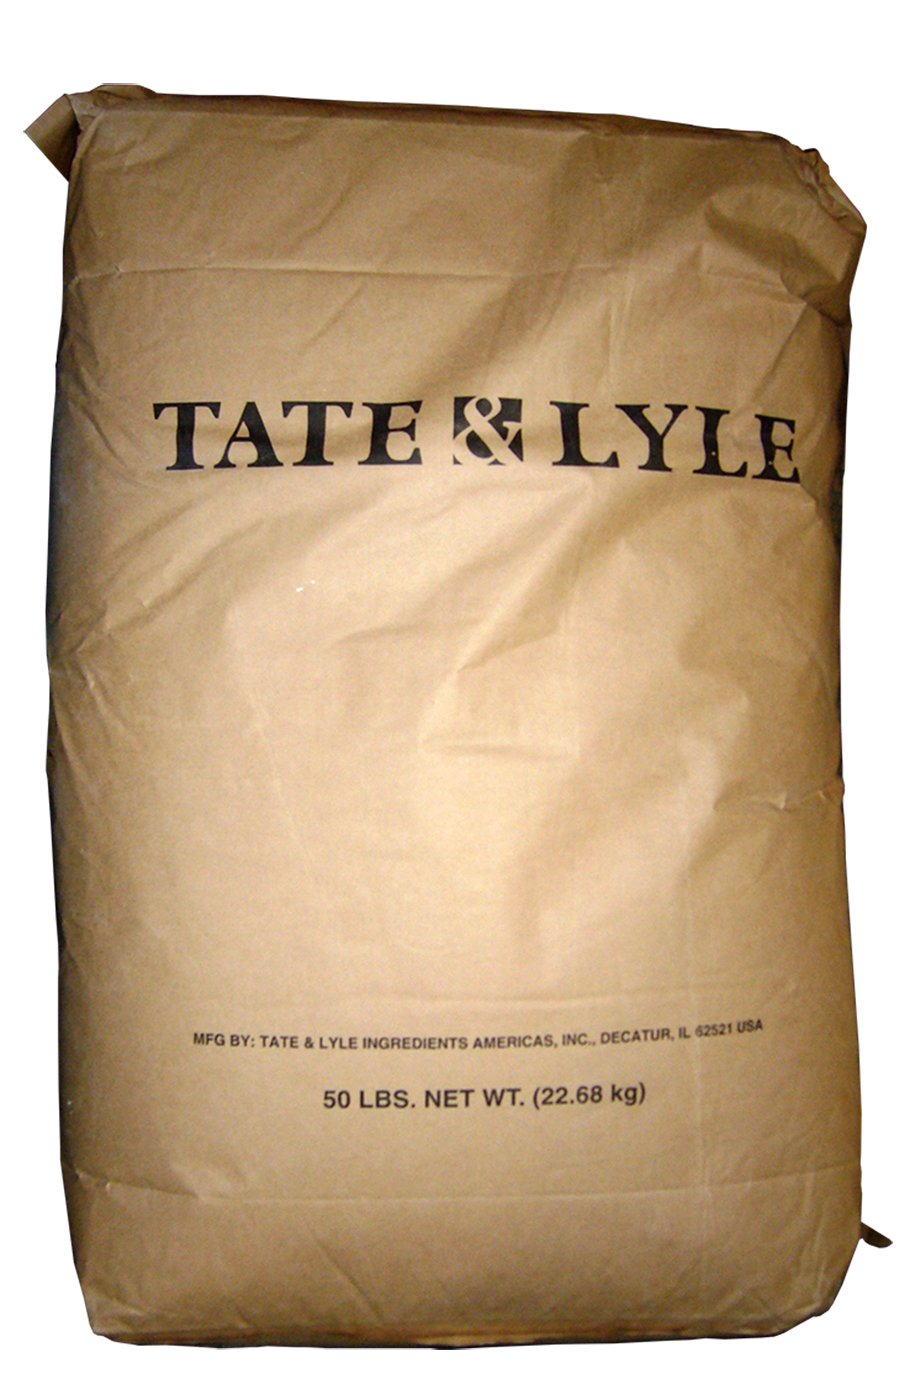 Corn Starch (Starch) [(C6H10O5)n] [CAS_9005-25-8] Food Grade 89%, White Powder (50 Lbs) sold by Wintersun Chemical by Tate & Lyle